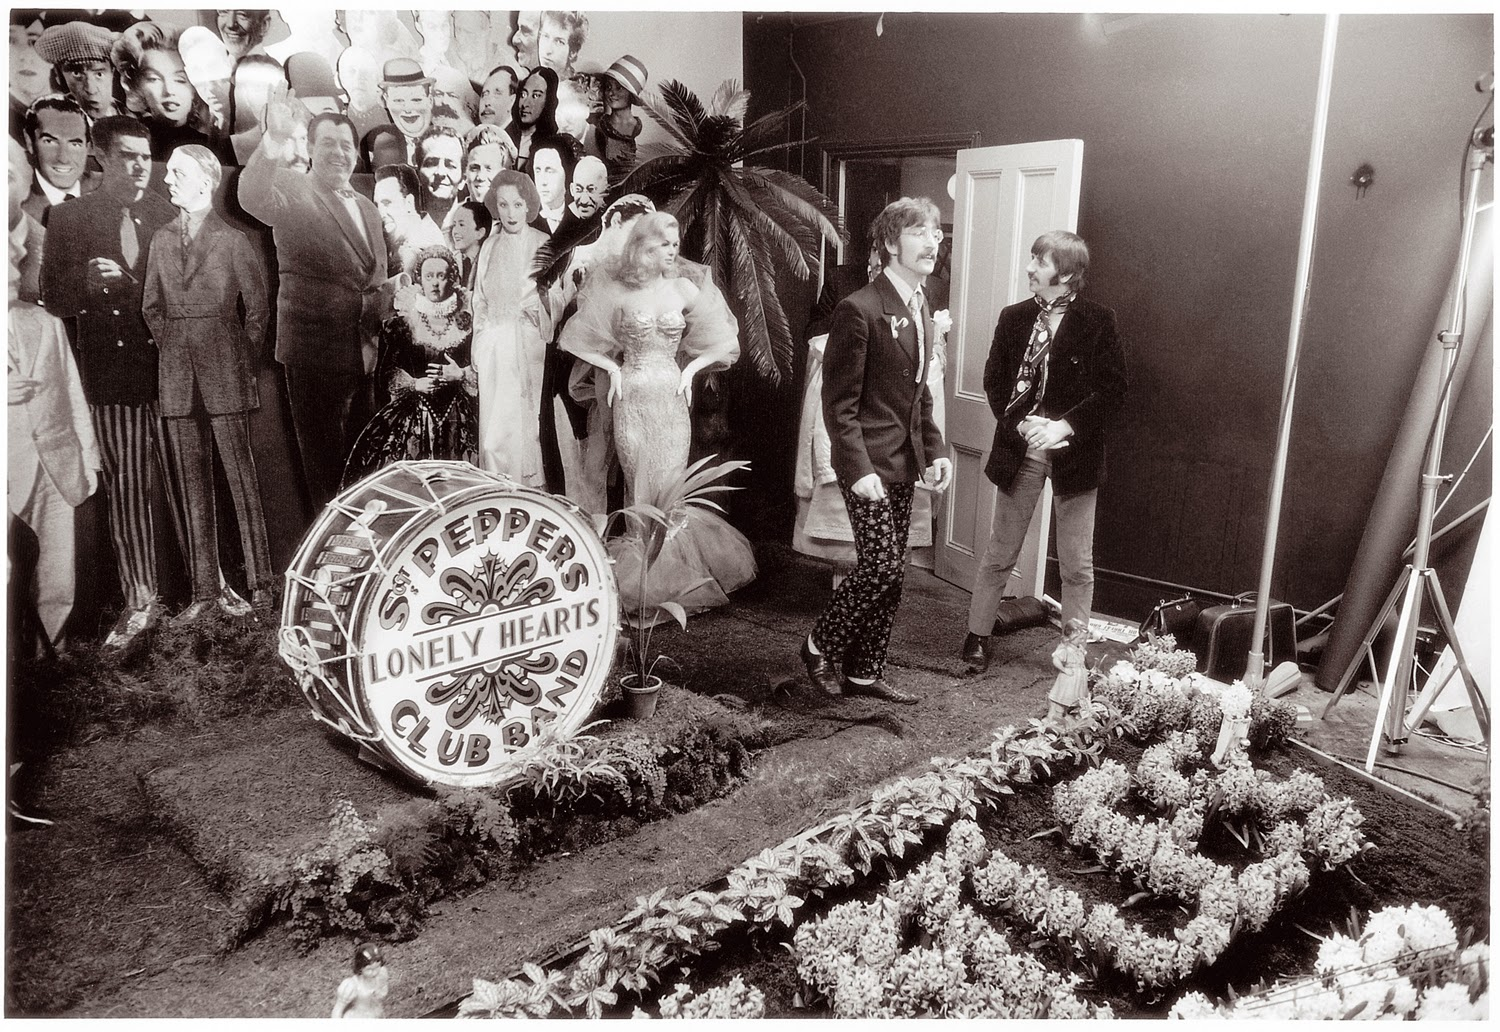 Making The Cover for Sgt Pepper's Lonely Hearts Club Band (1)